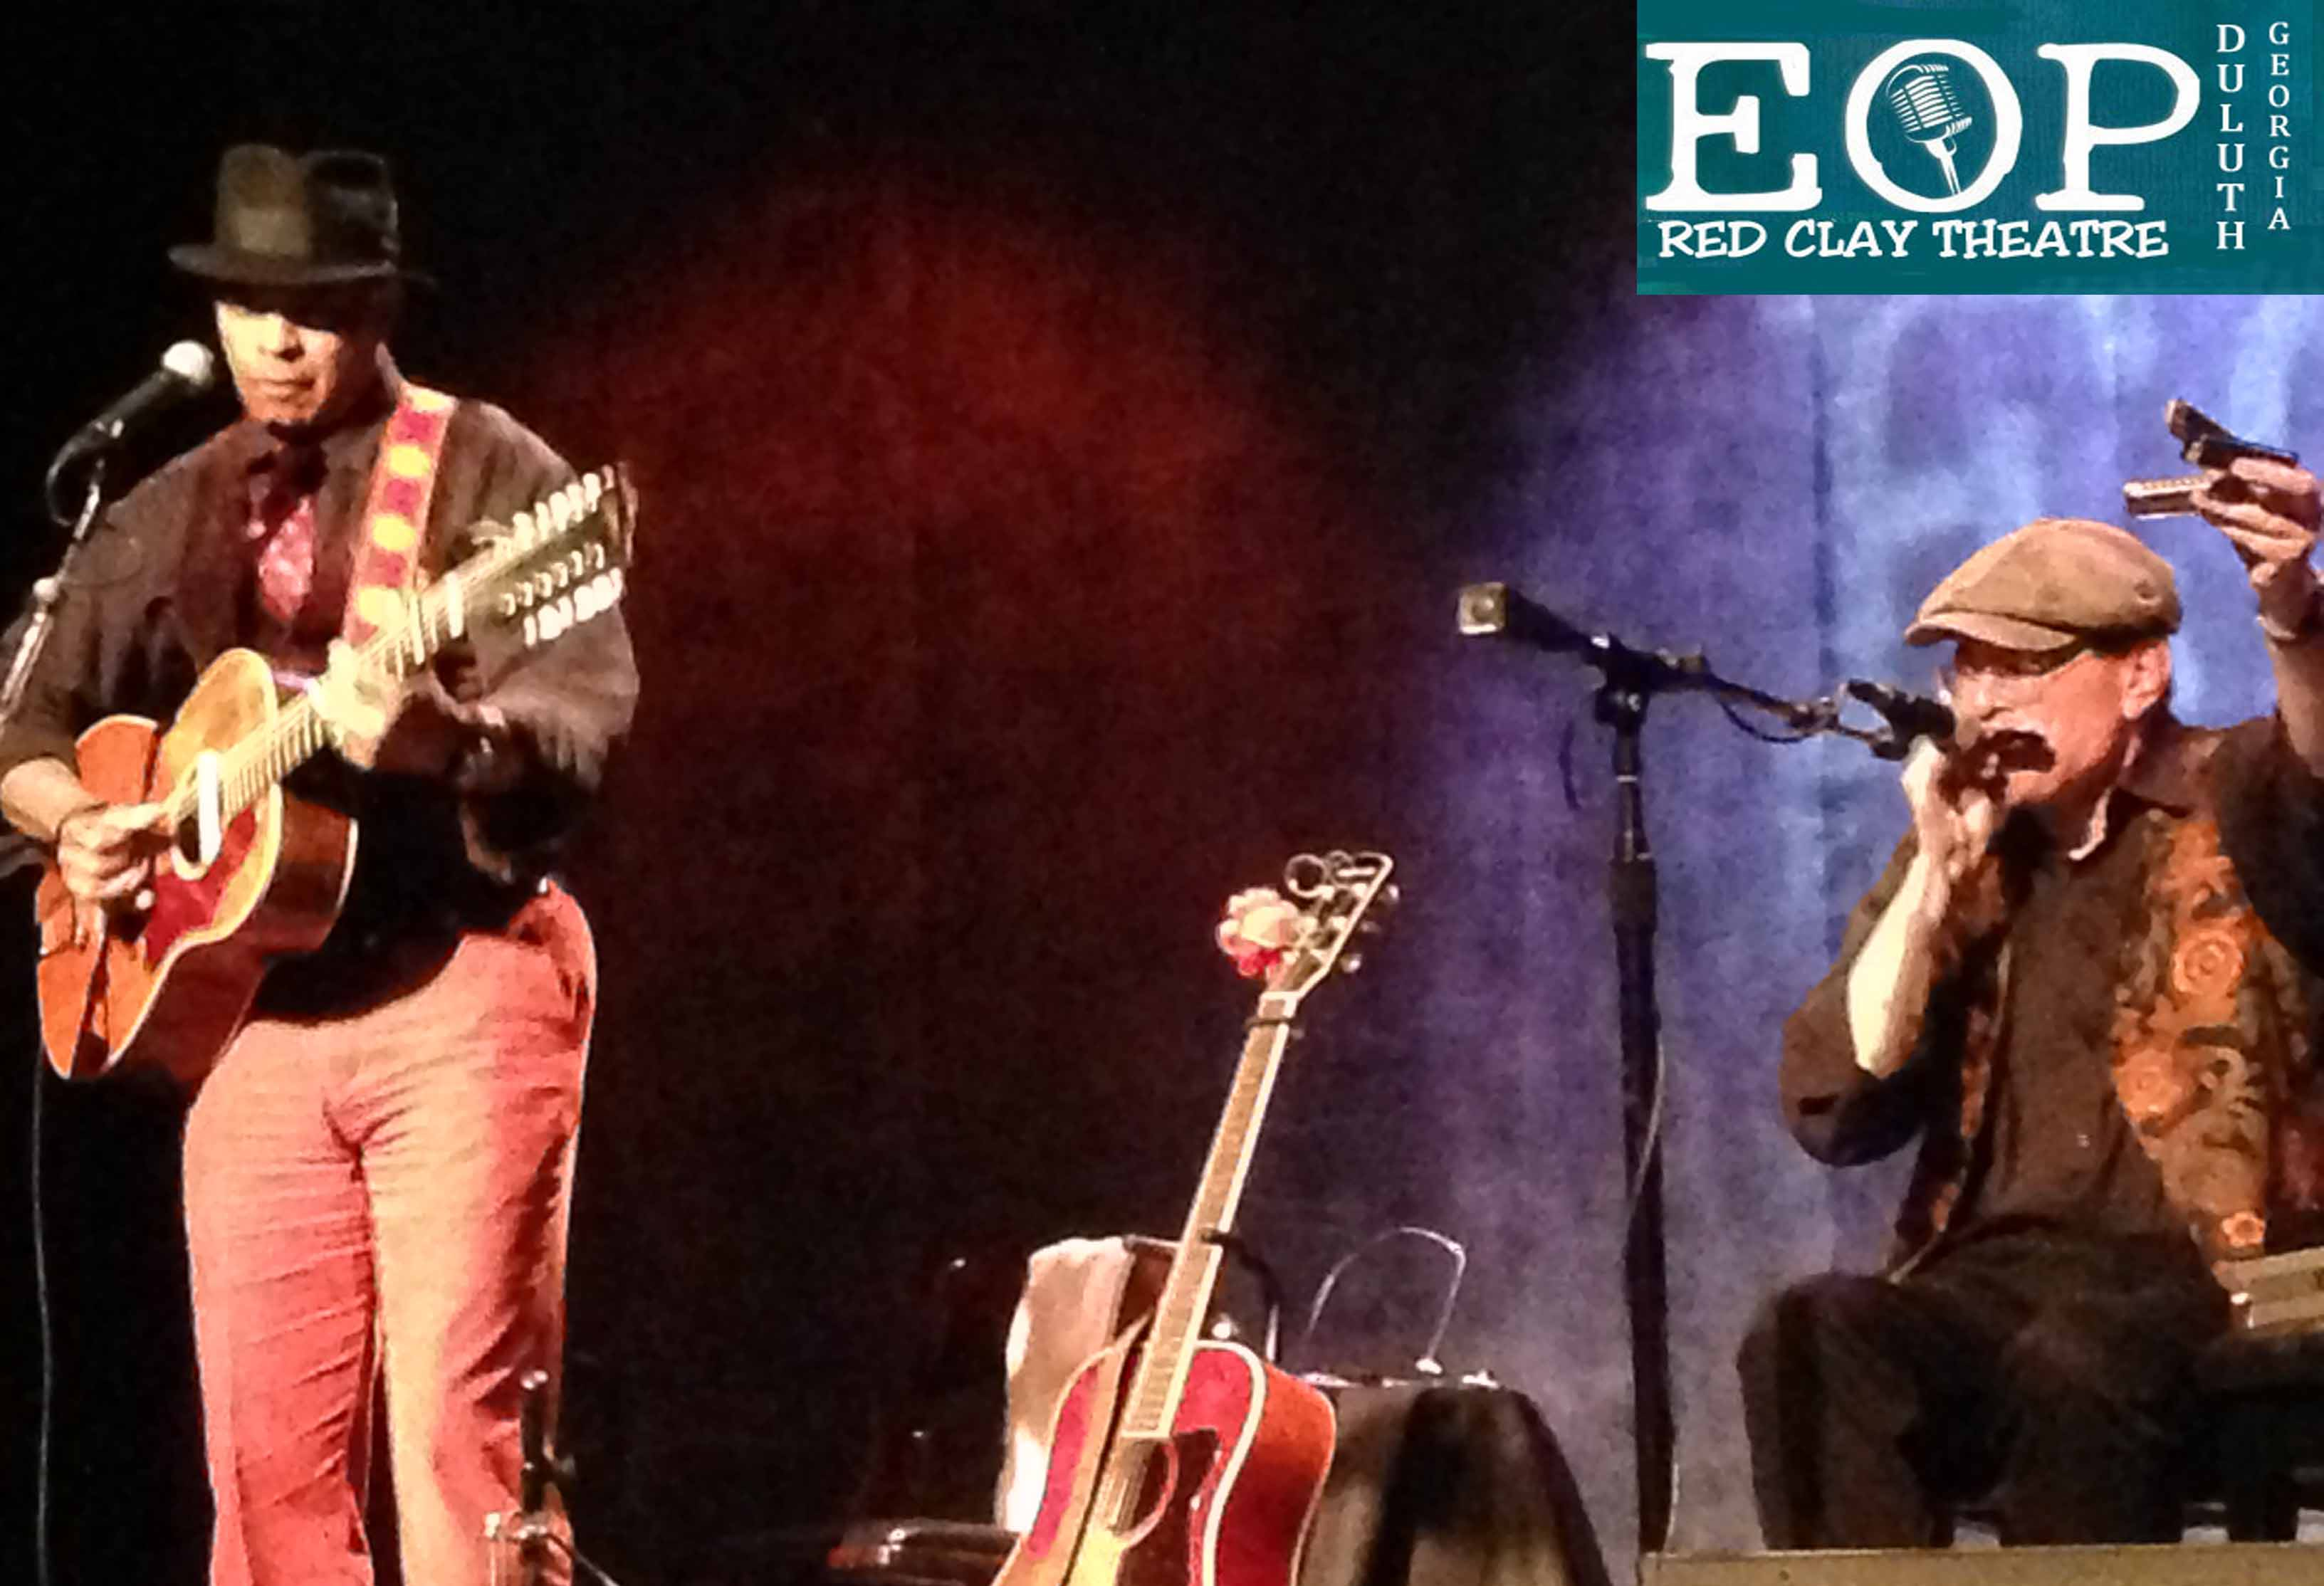 GUY DAVIS & FABRIZIO POGGI 2014 USA TOUR RED CLAY THEATRE Duluth, Georgia